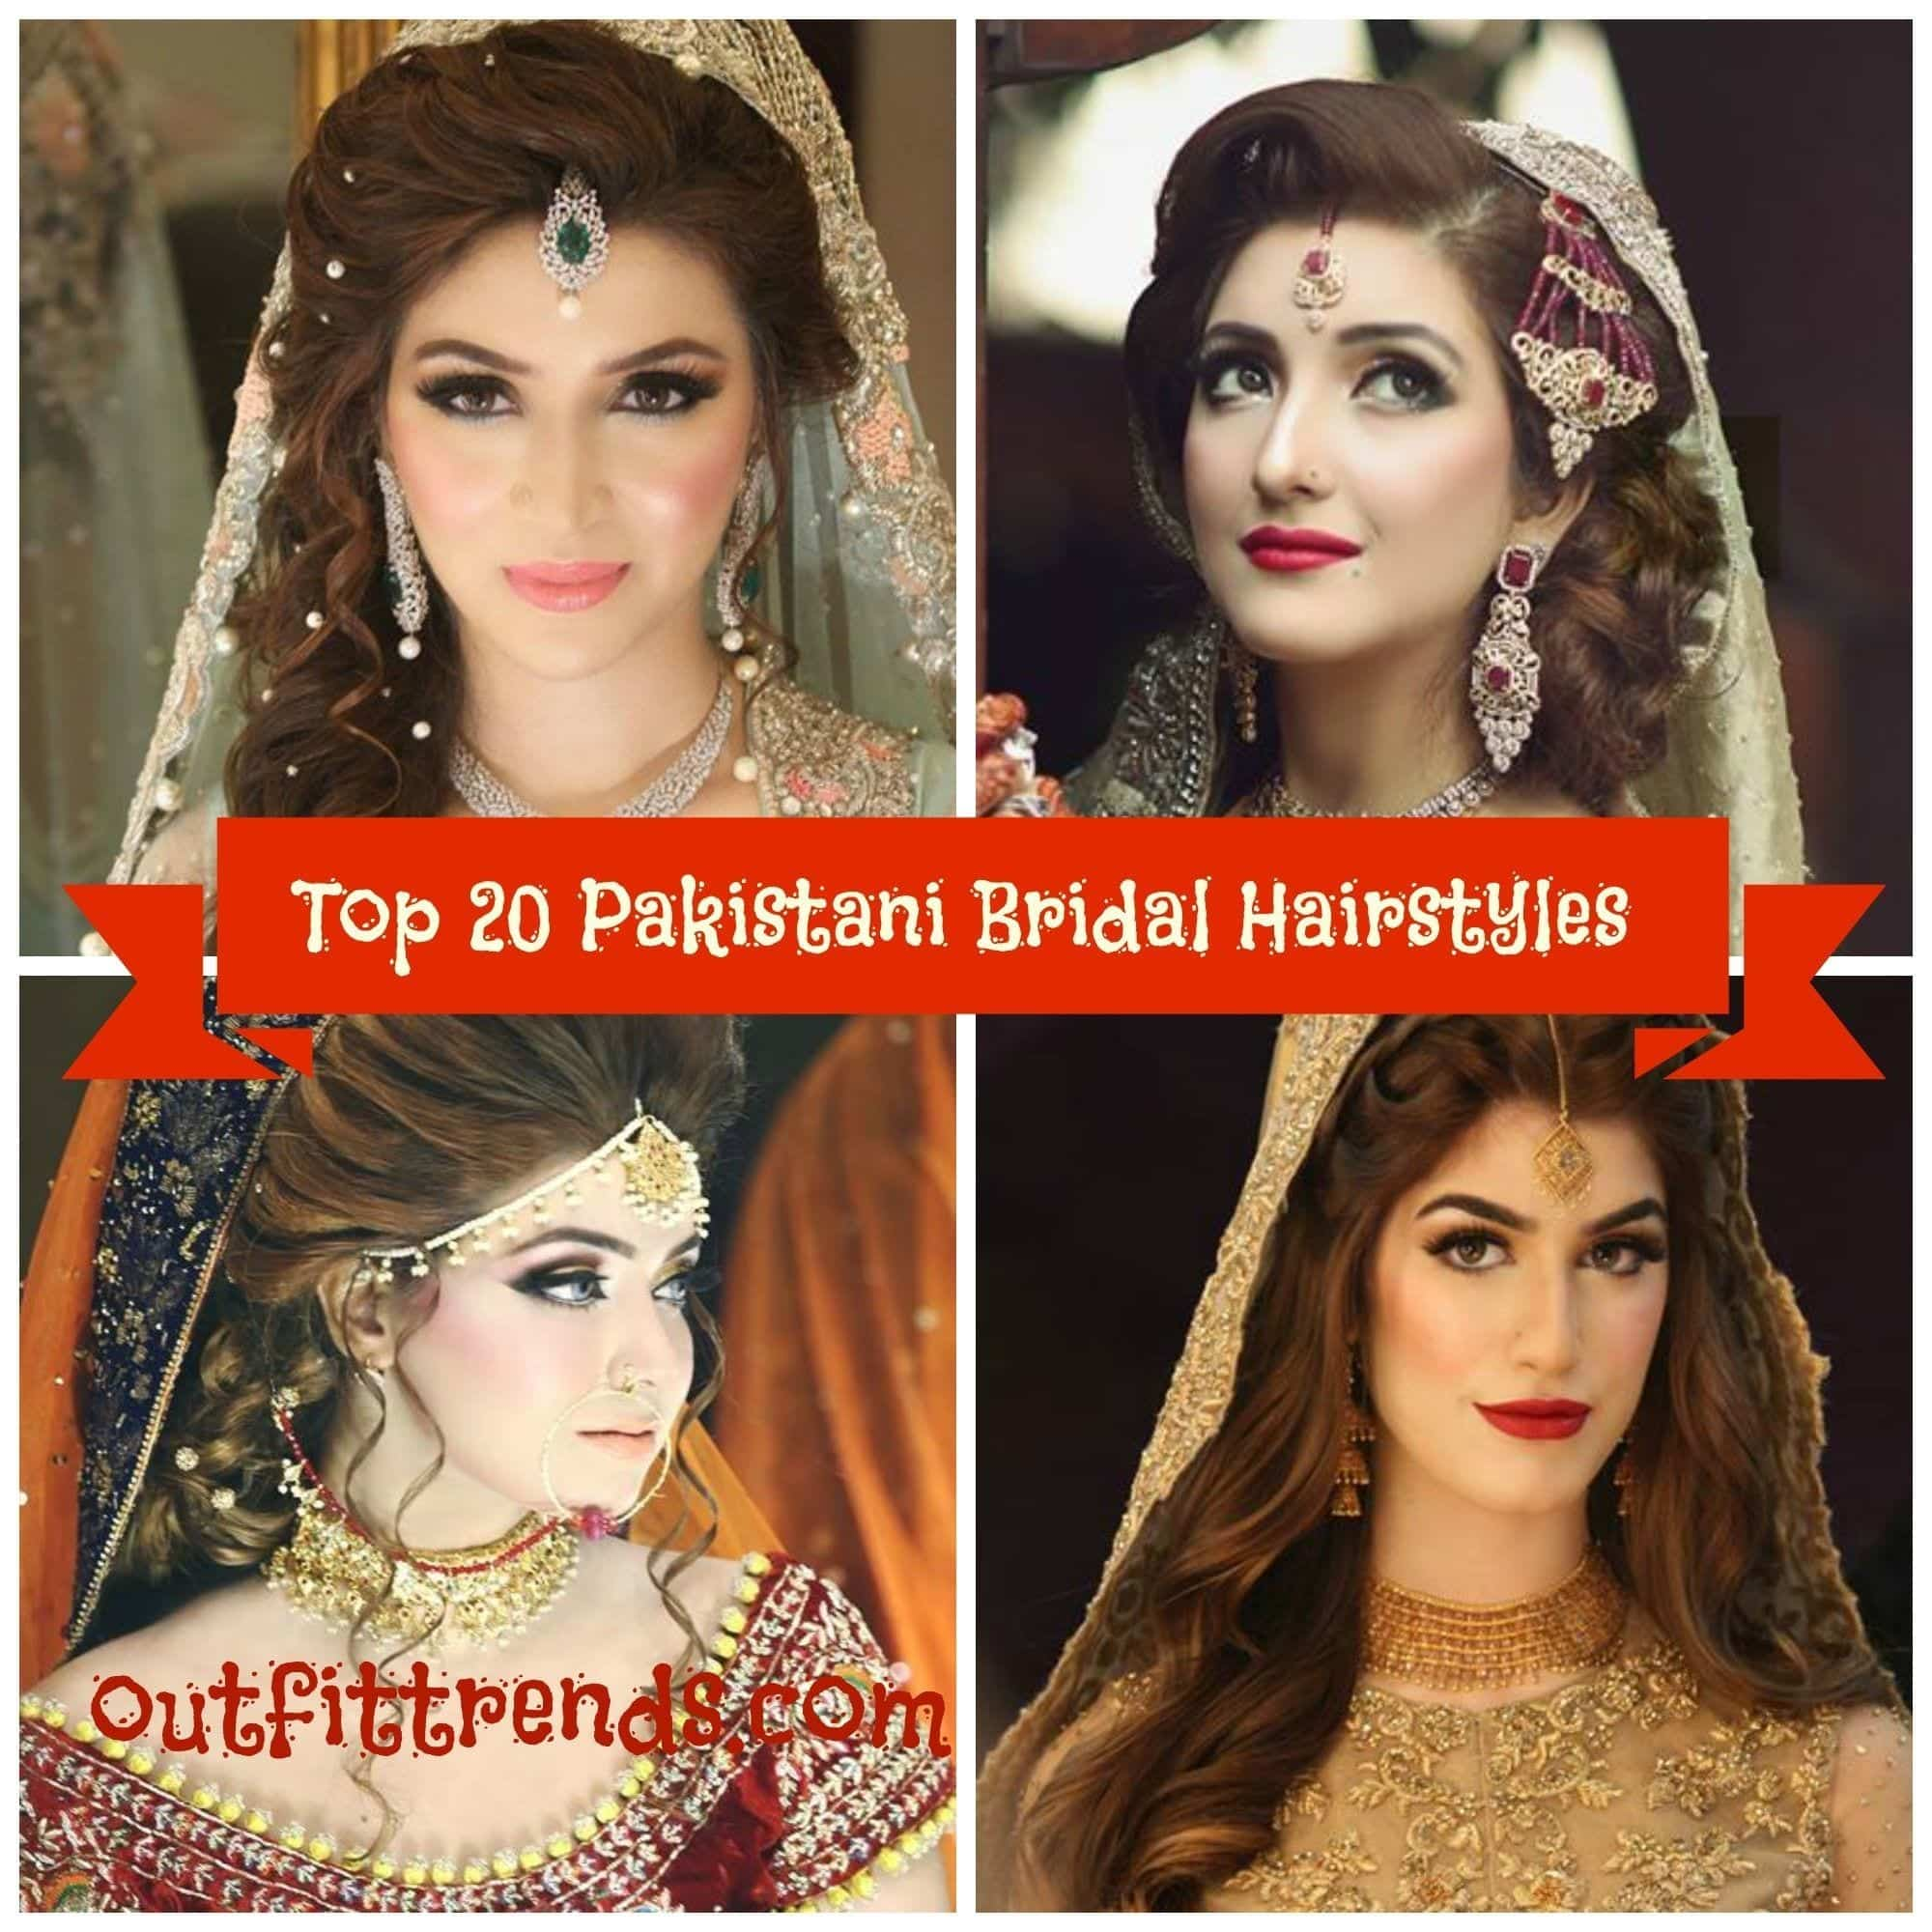 PicMonkey-Collage-6 20 Pakistani Wedding Hairstyles for a Perfect Looking Bride